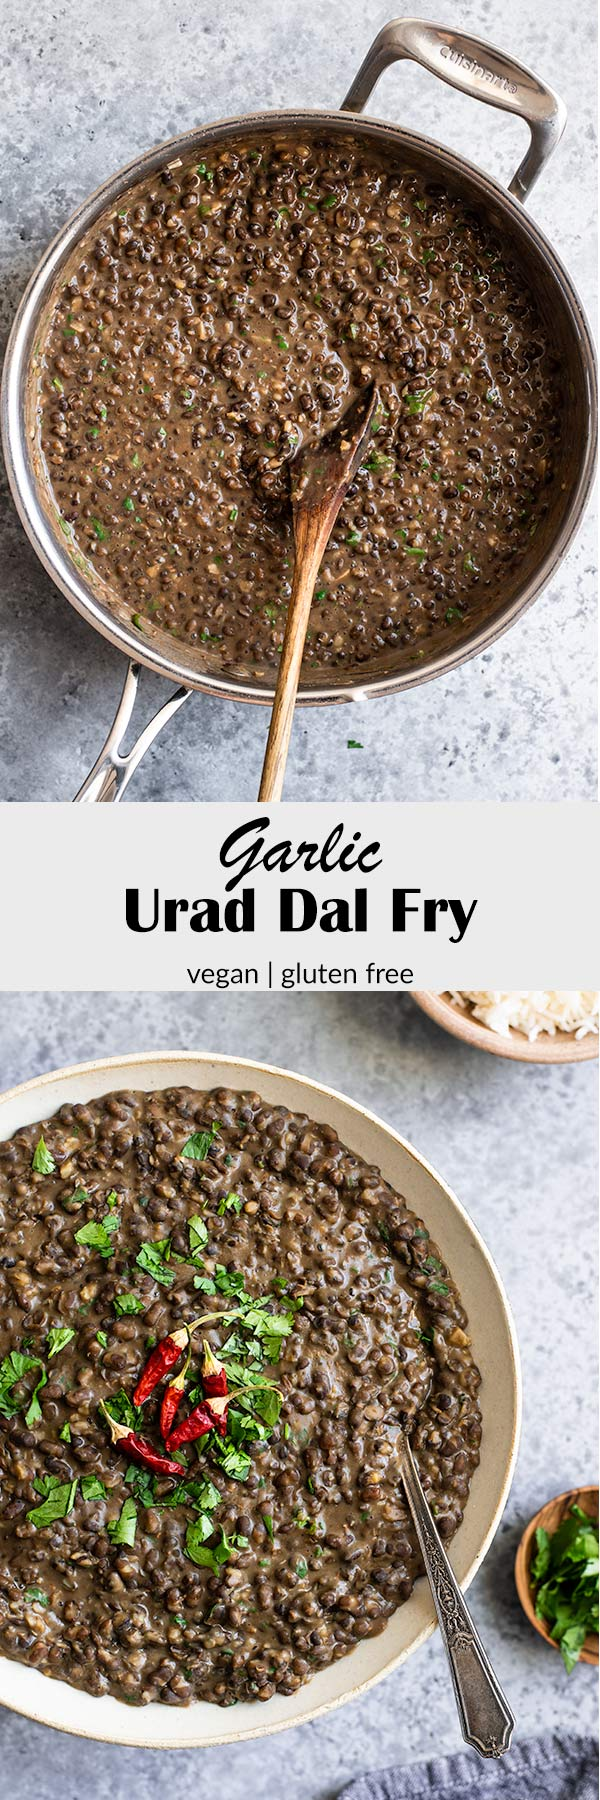 Garlic urad dal fry is a delicious Indian lentil dish. It's so easy to make and bursting with flavor! Try this next time you're considering take out! #vegan #glutenfree #indian #dal #veganindian #veganentree #entree #lentils #uraddal